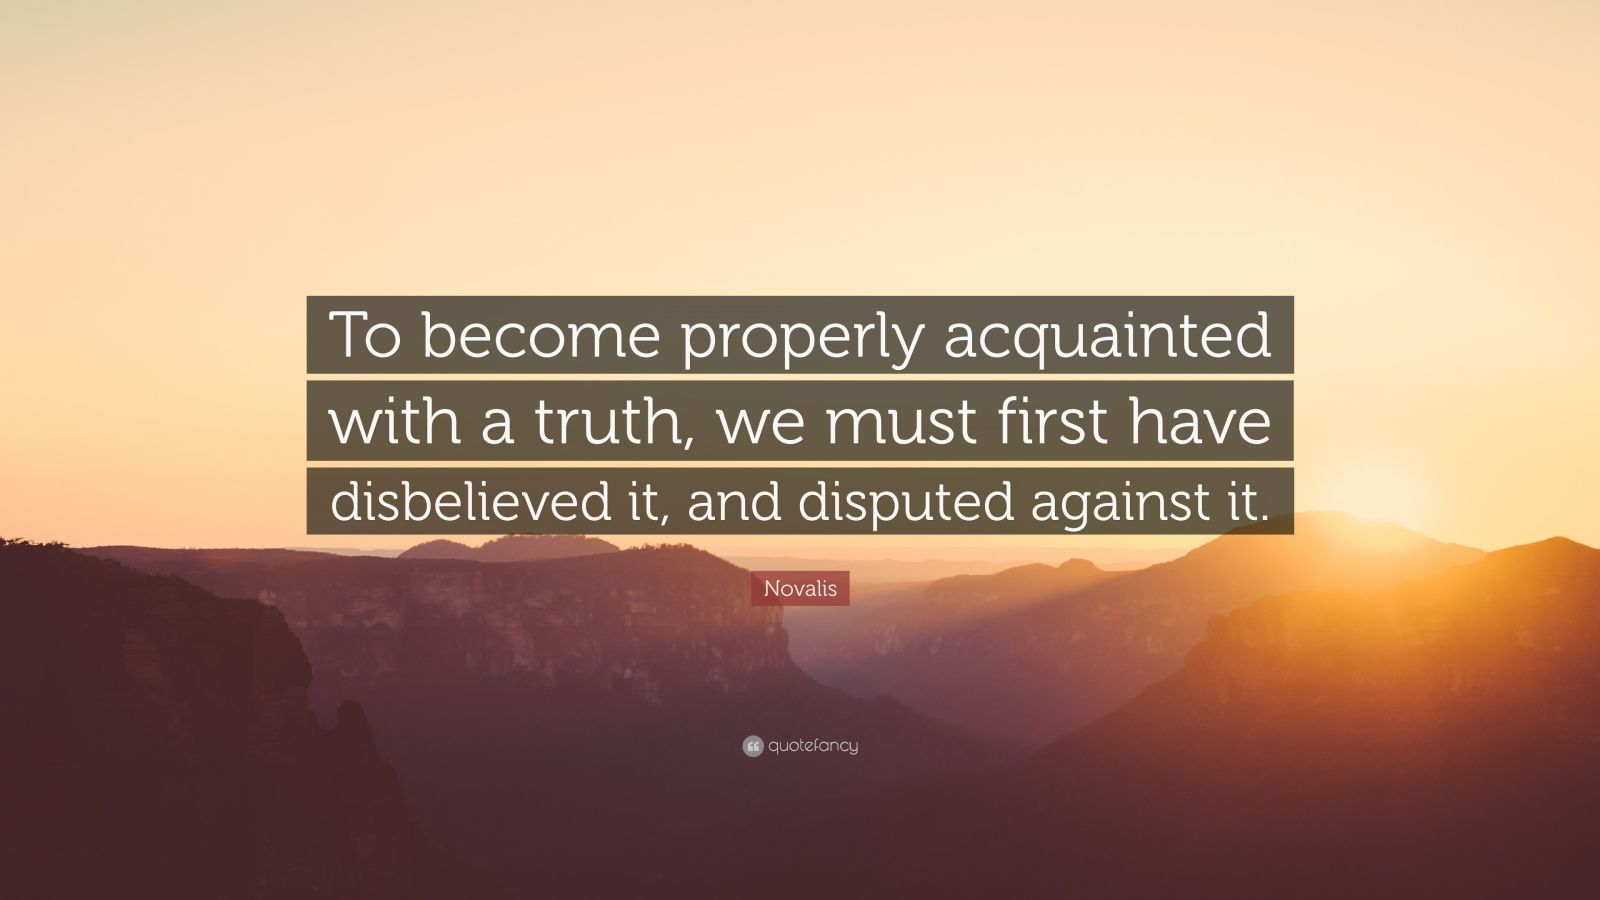 """Novalis Quote: """"To become properly acquainted with a truth, we must first have disbelieved it, and disputed against it."""""""